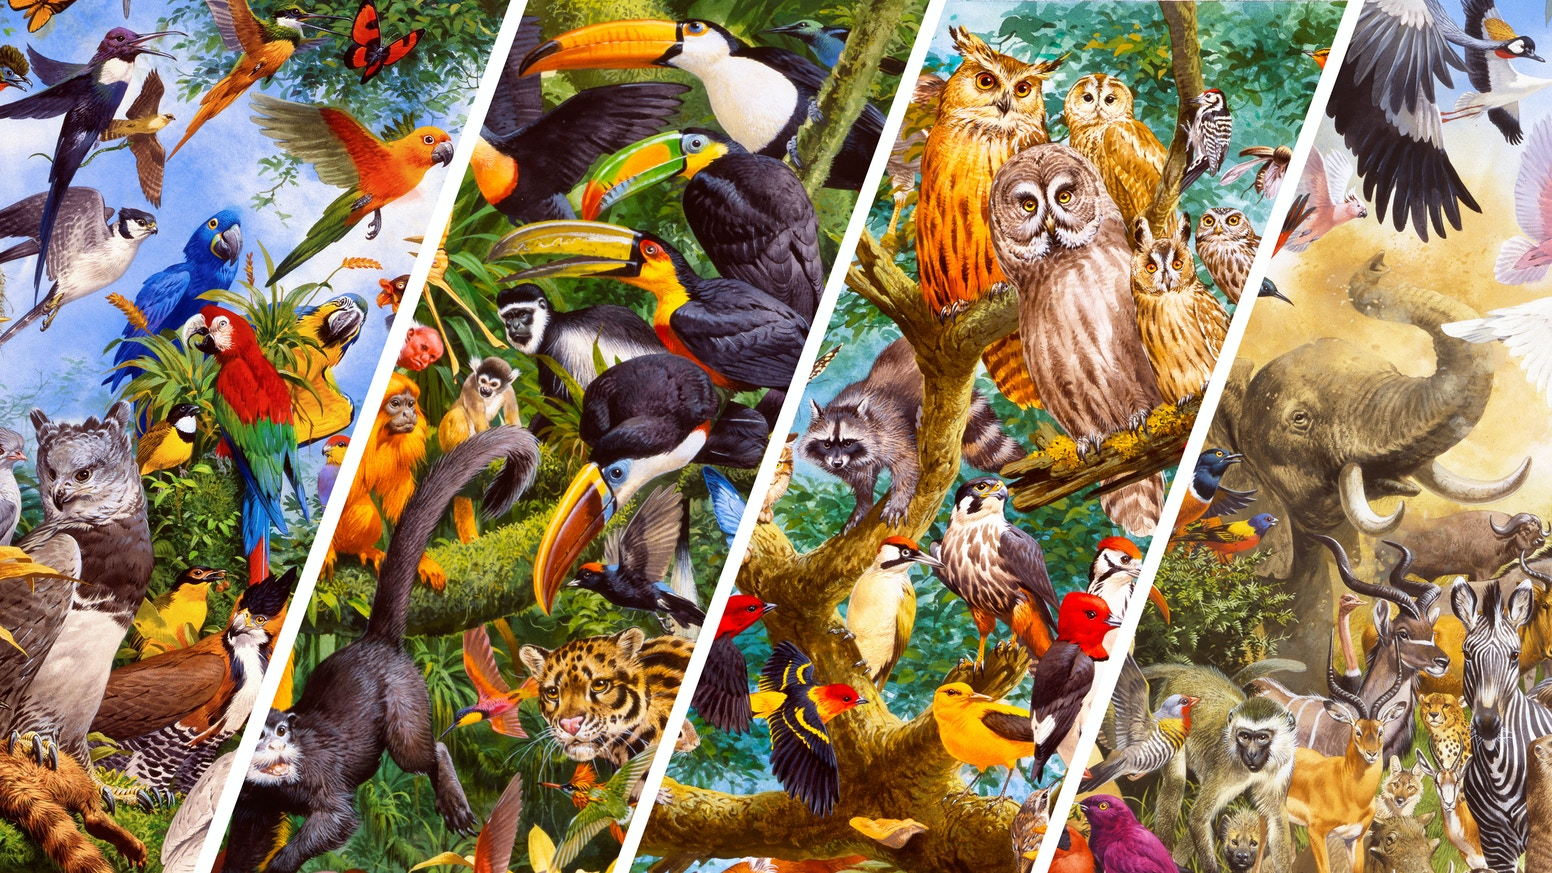 1000-piece jigsaw puzzles, showing the beauty of nature